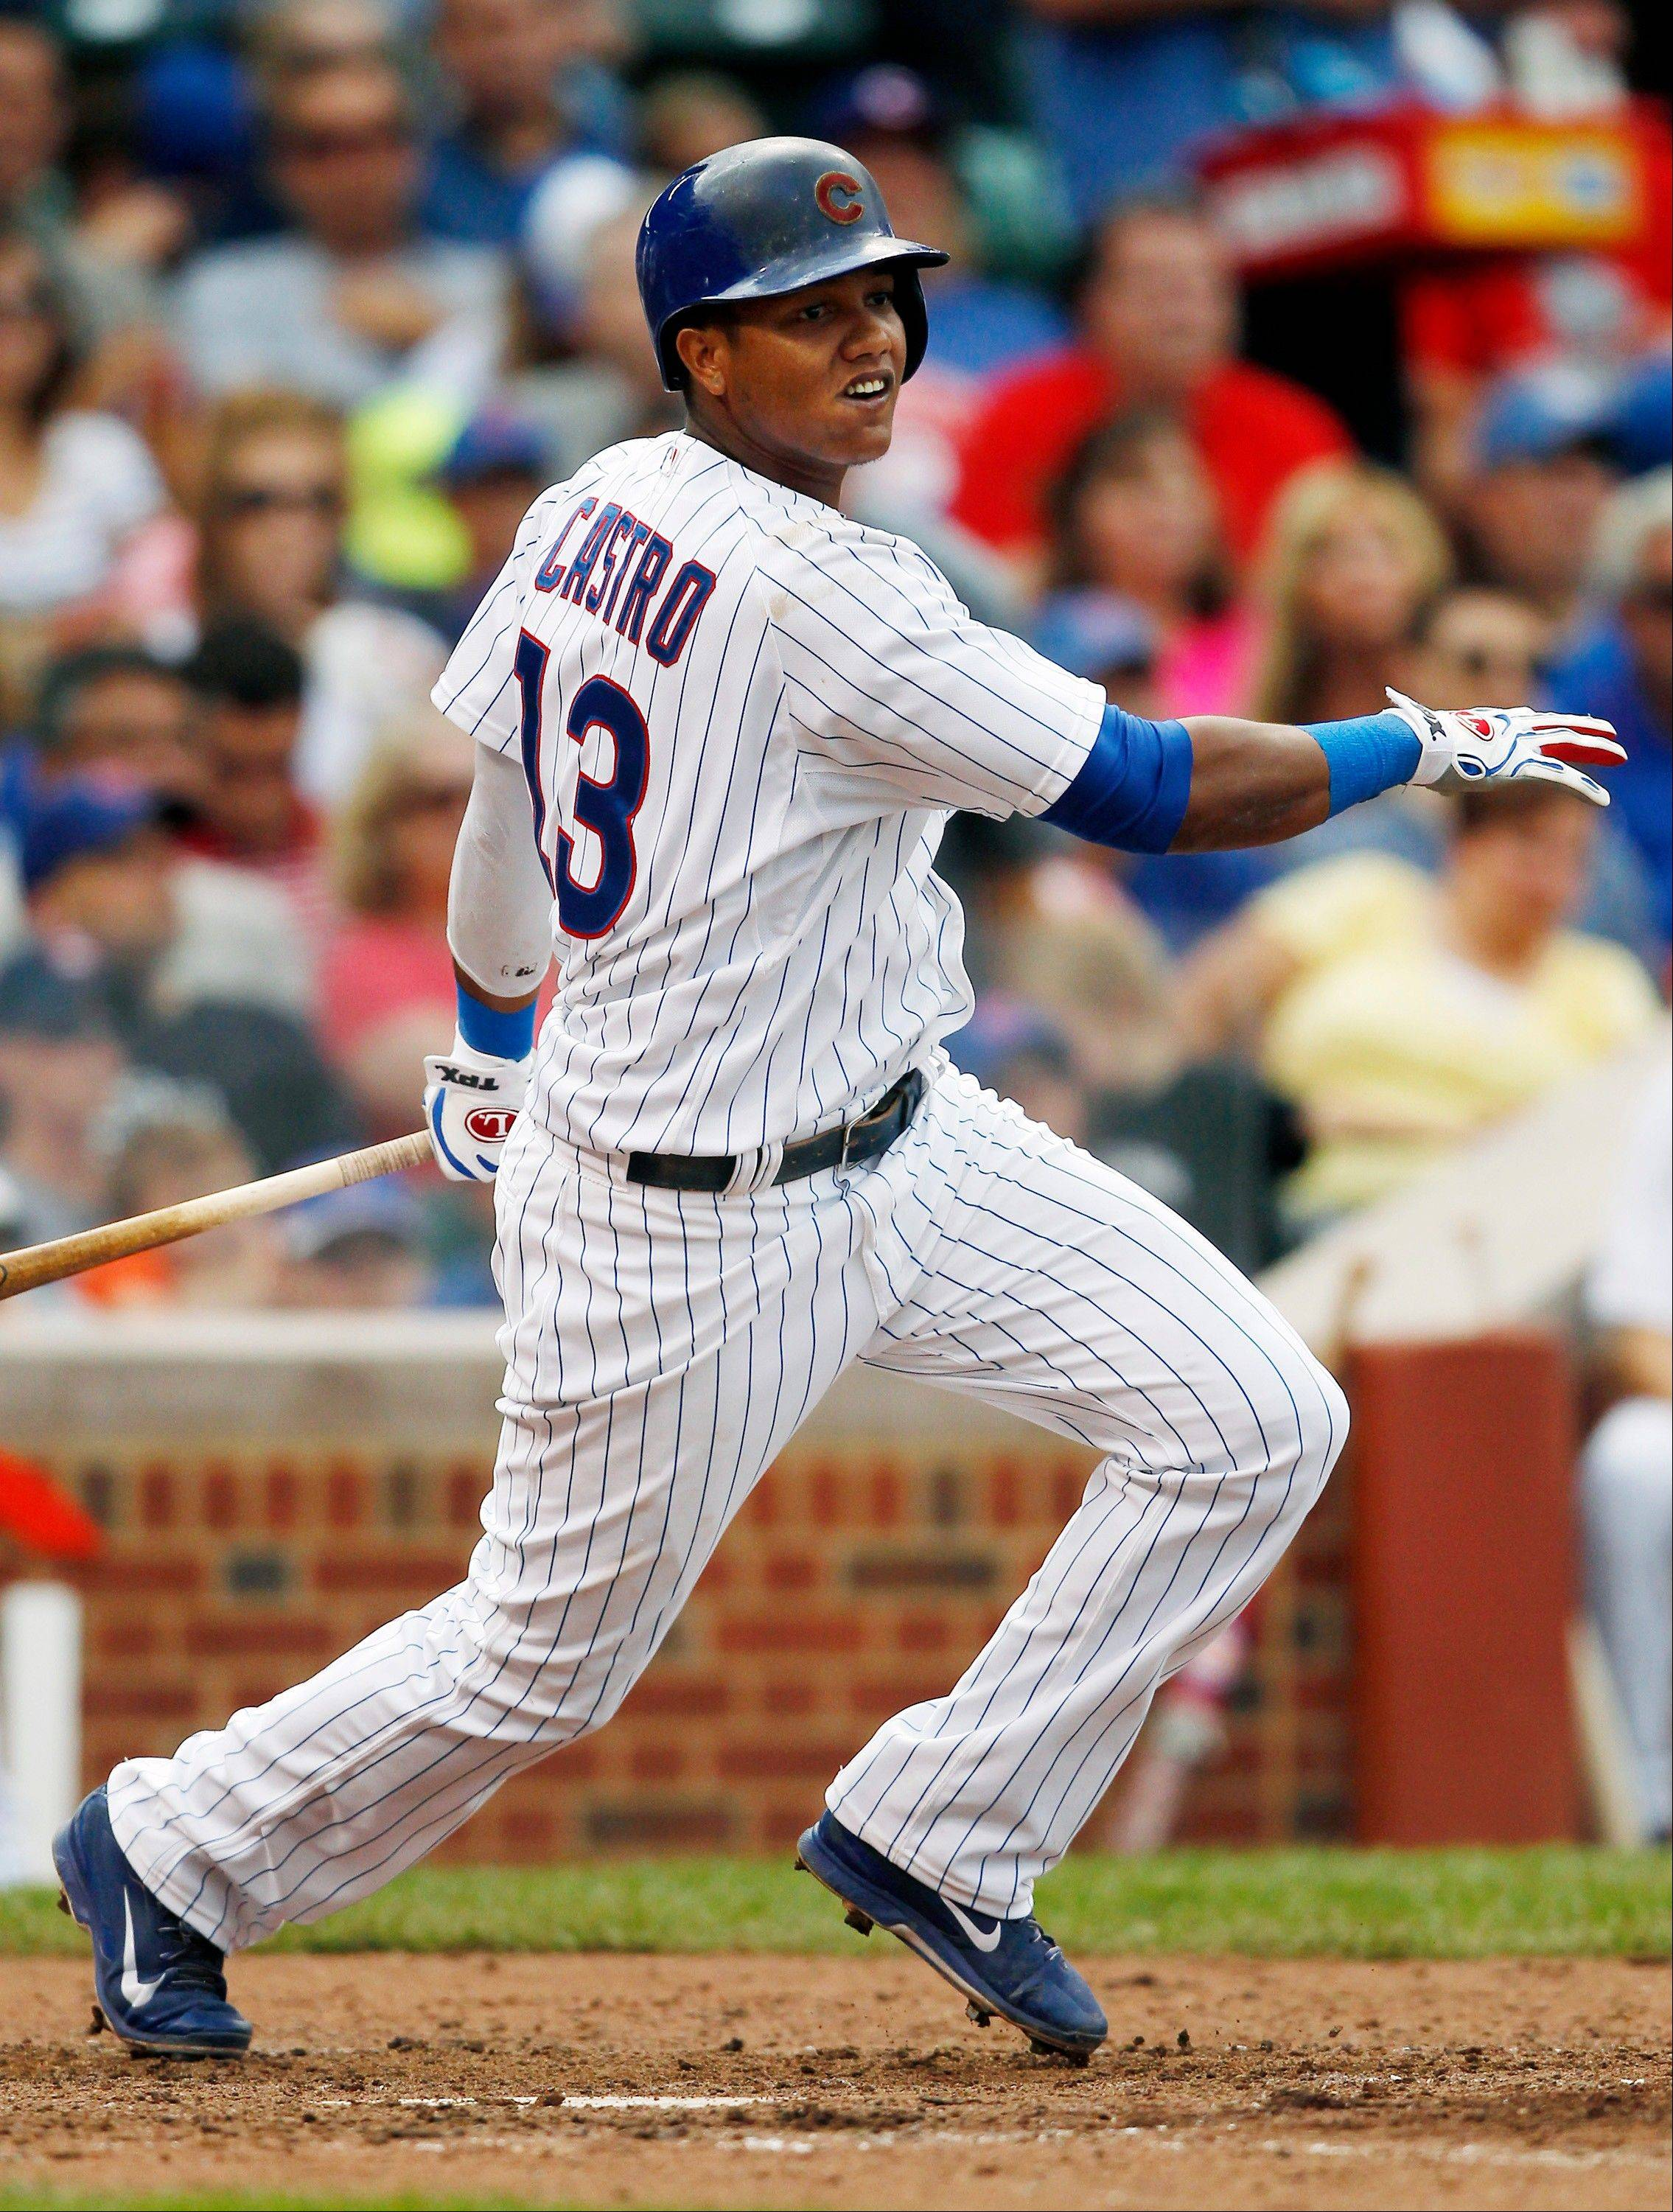 Chicago Cubs' Starlin Castro hits a double against the Philadelphia Phillies during the fourth inning of a baseball game on Saturday in Chicago.